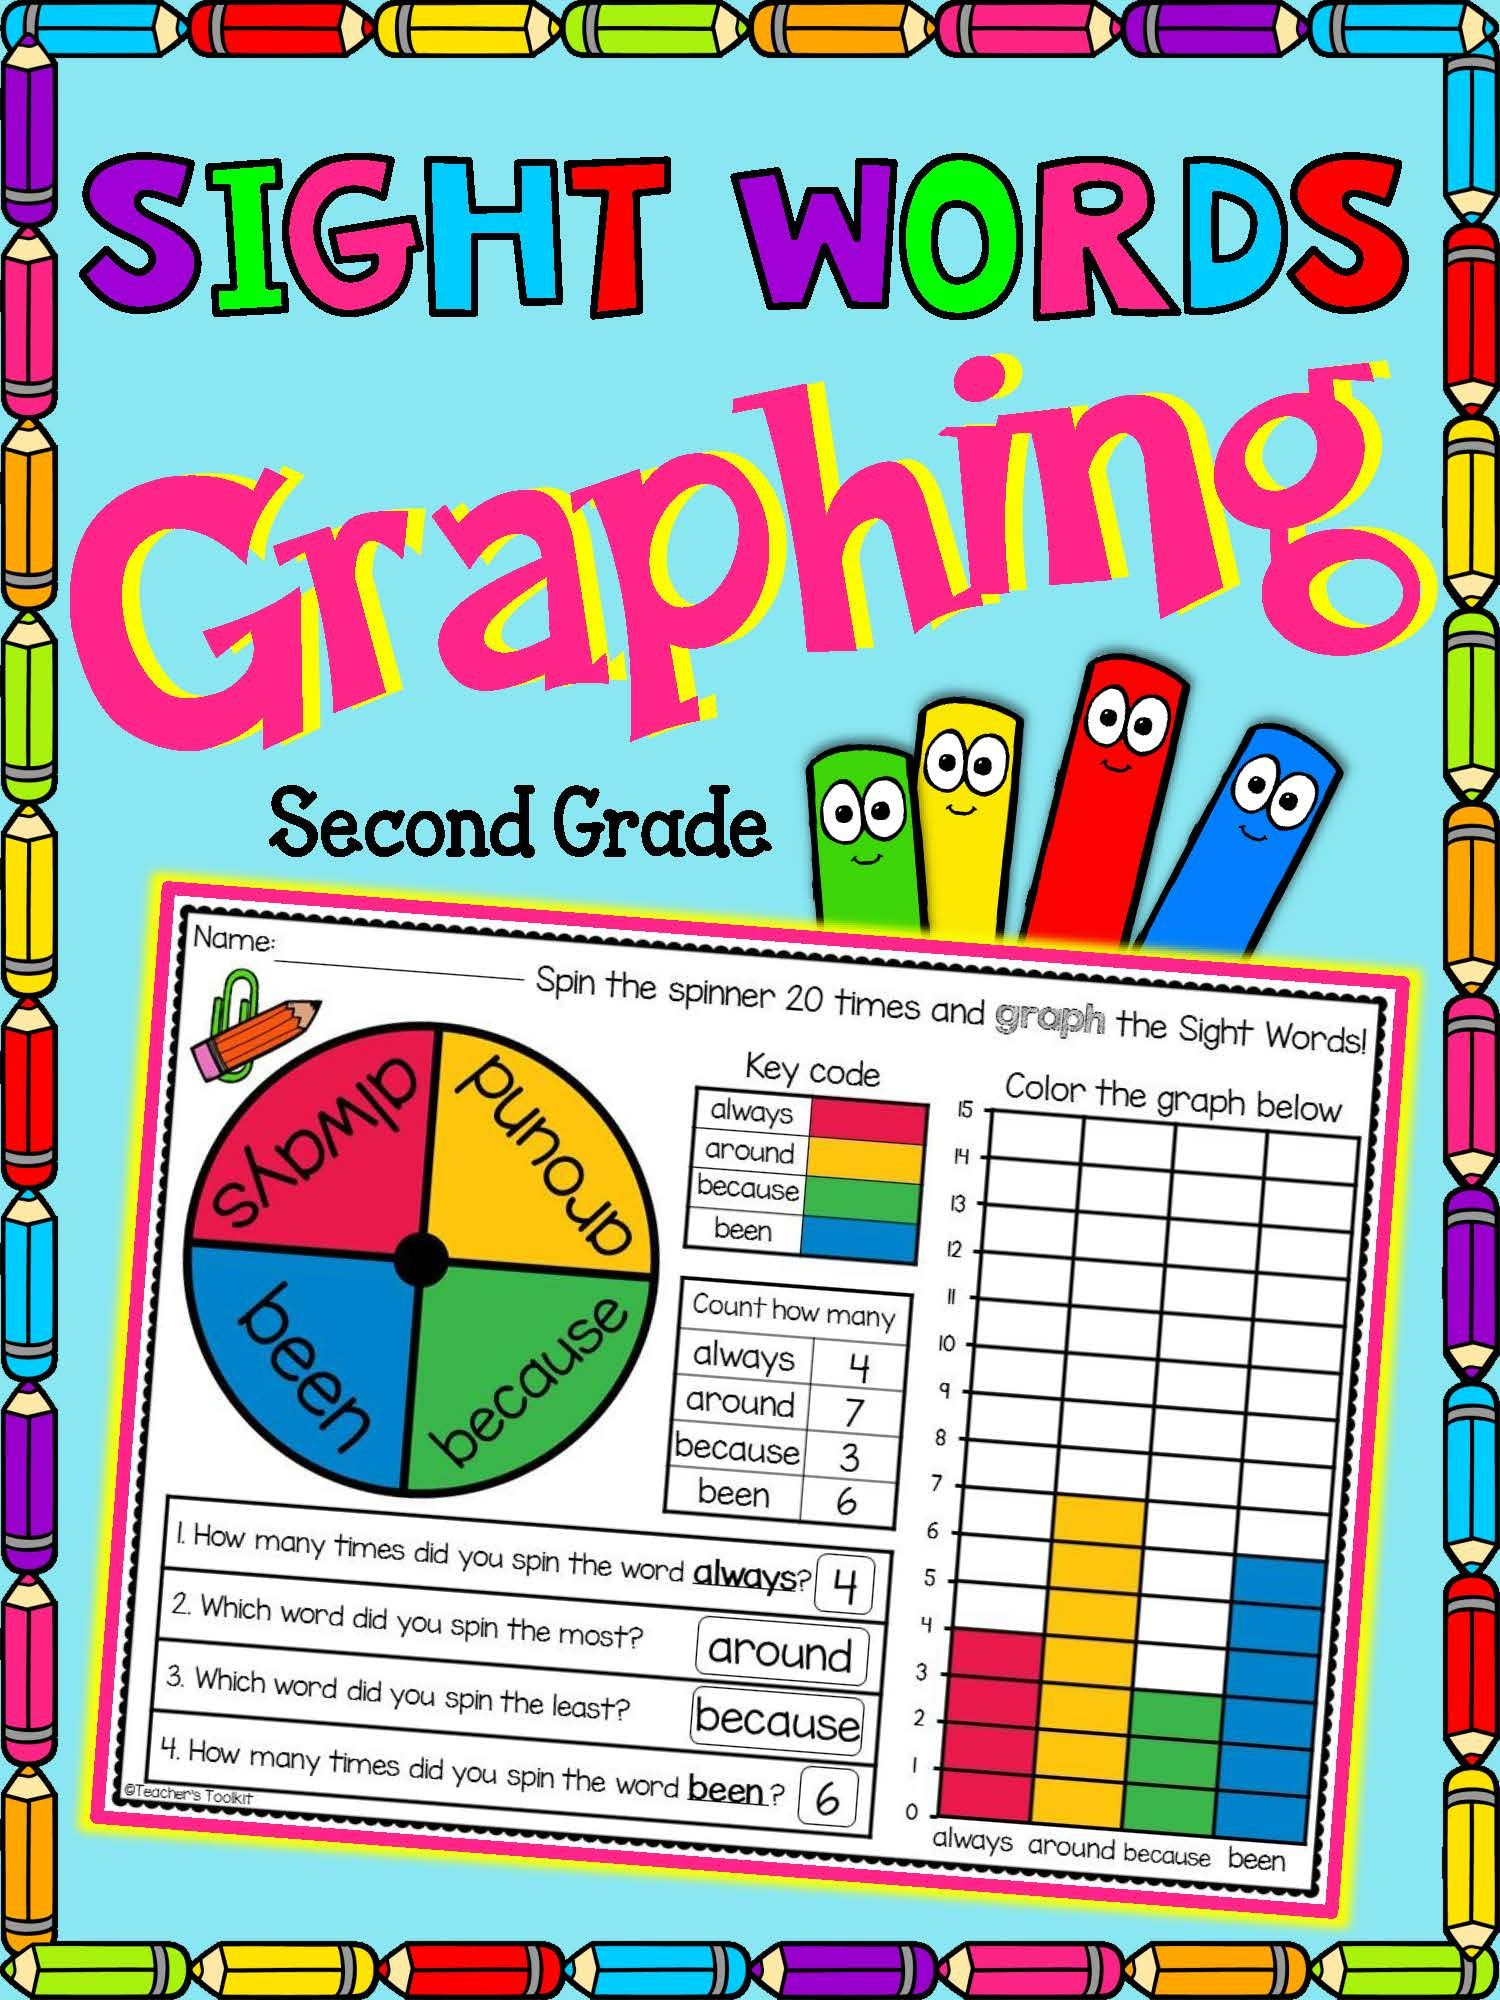 Sight Word Graphing Activity